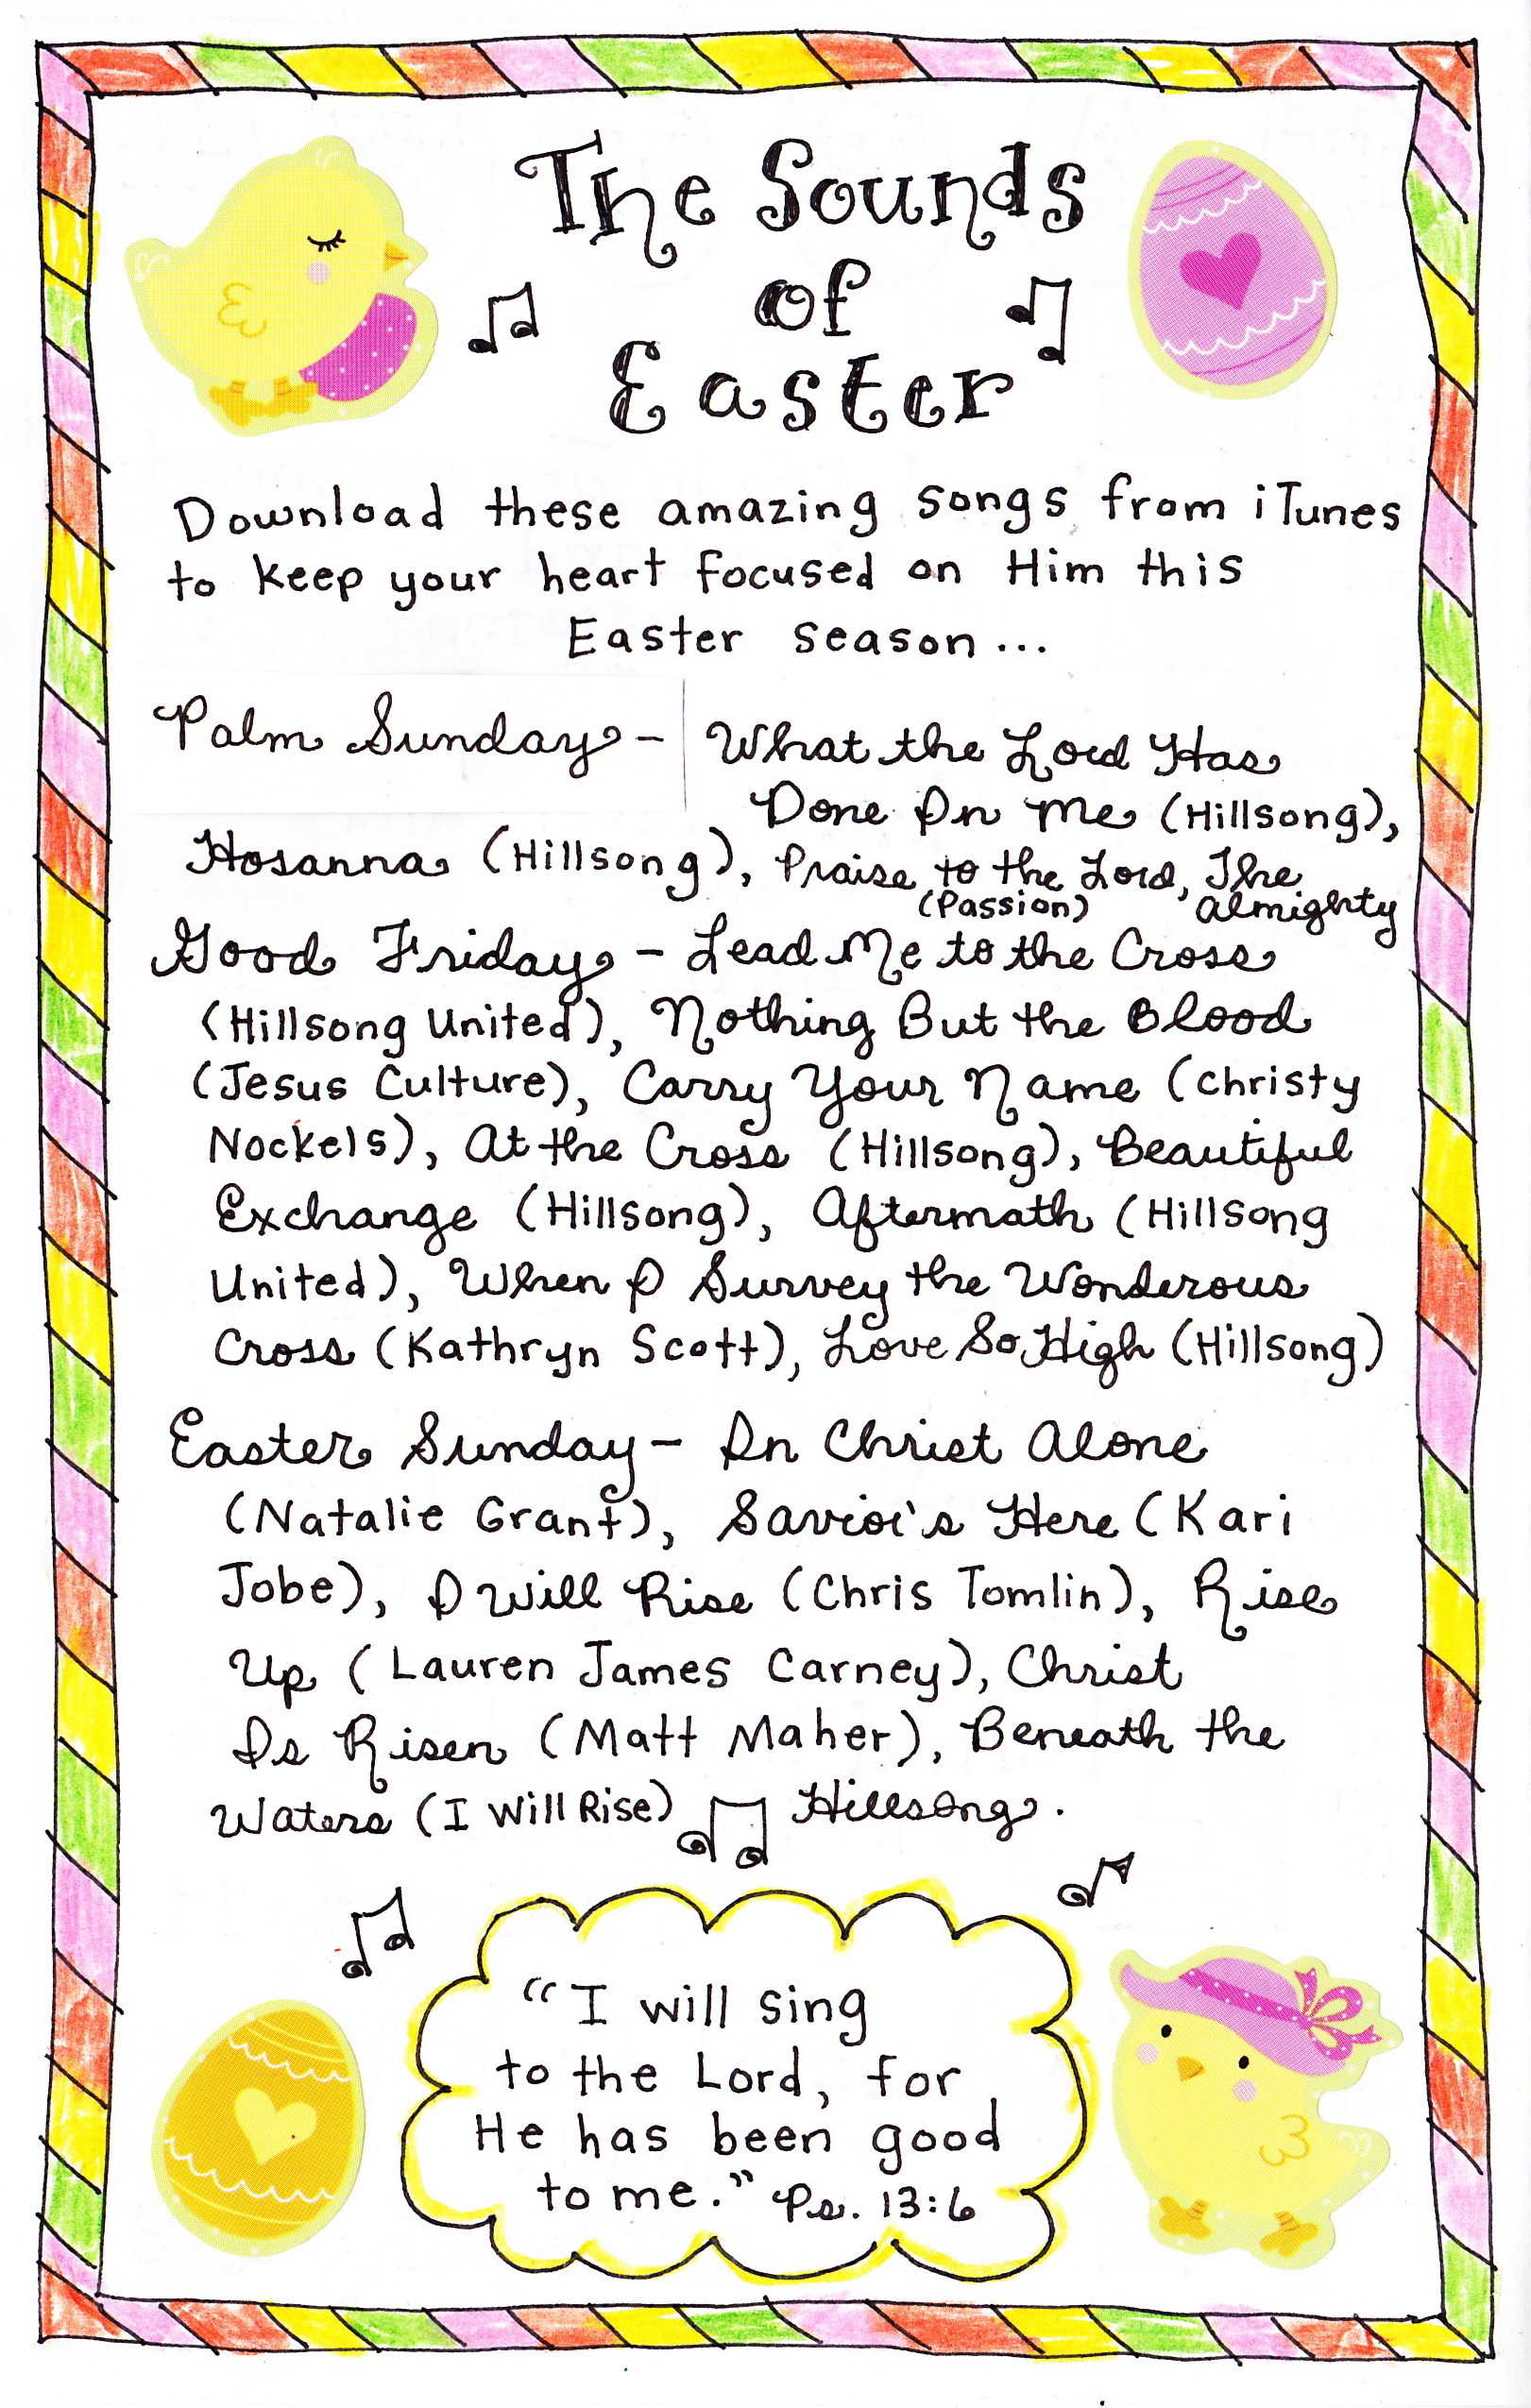 Youtube Easter Songs: The Sounds Of Easter